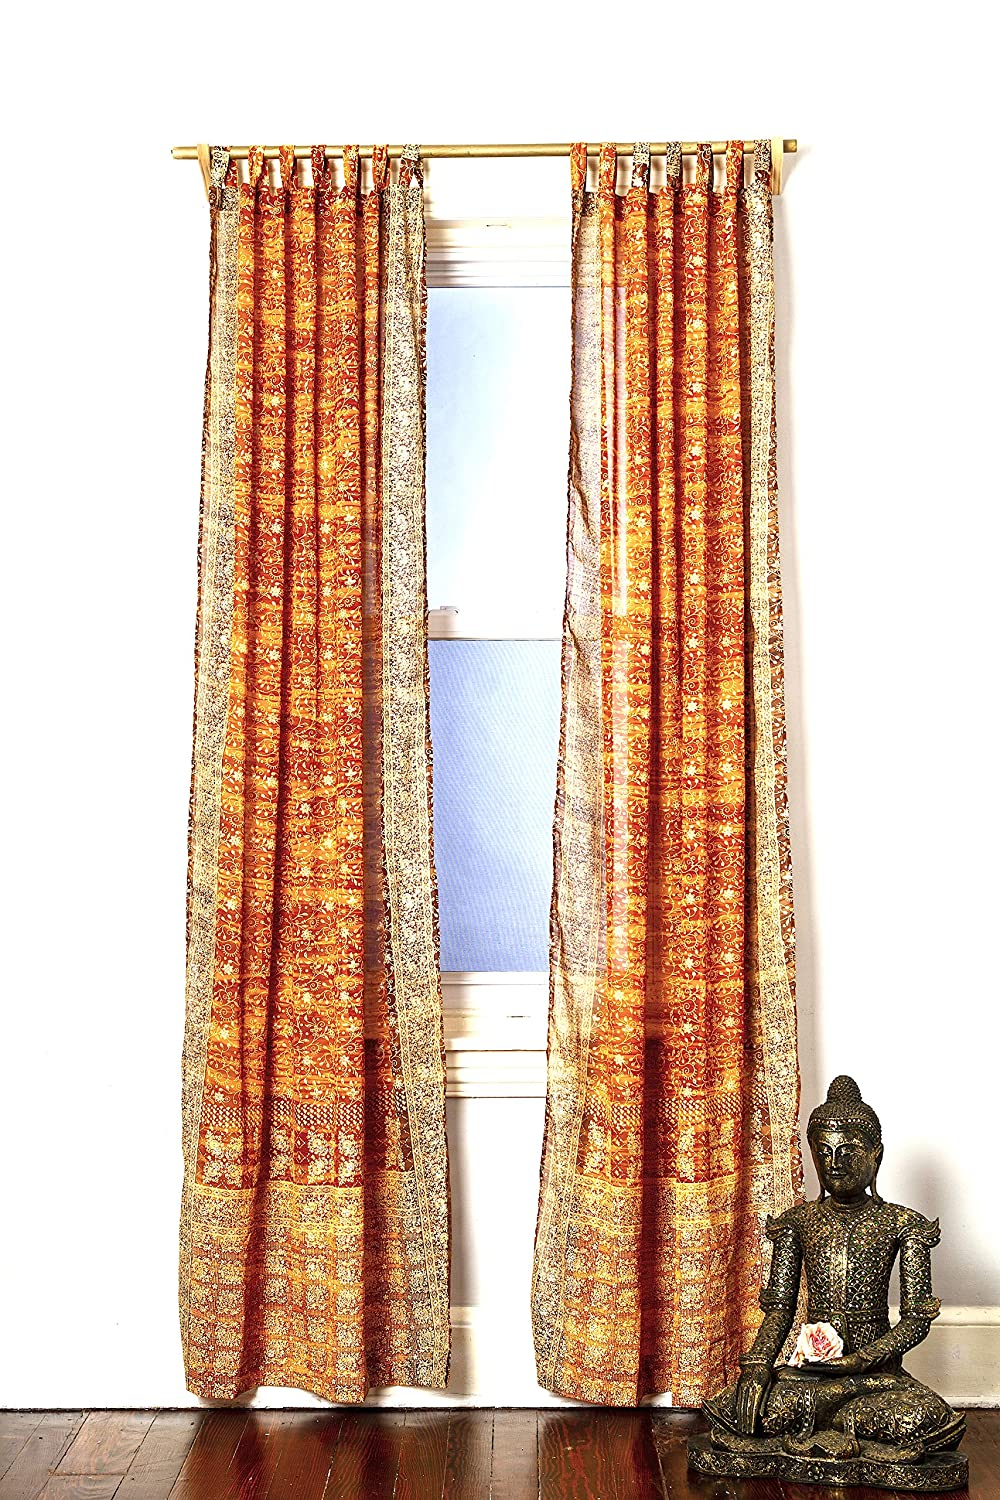 Gold Yellow Amber Honey Curtain Set Boho Window Treatment Light Sari 108 96 84 inch for Bedroom Living room Dining room Studio Canopy Bed Tent Hippie Gypsy Chic Bright Colorful HomeDecor W Gift bag